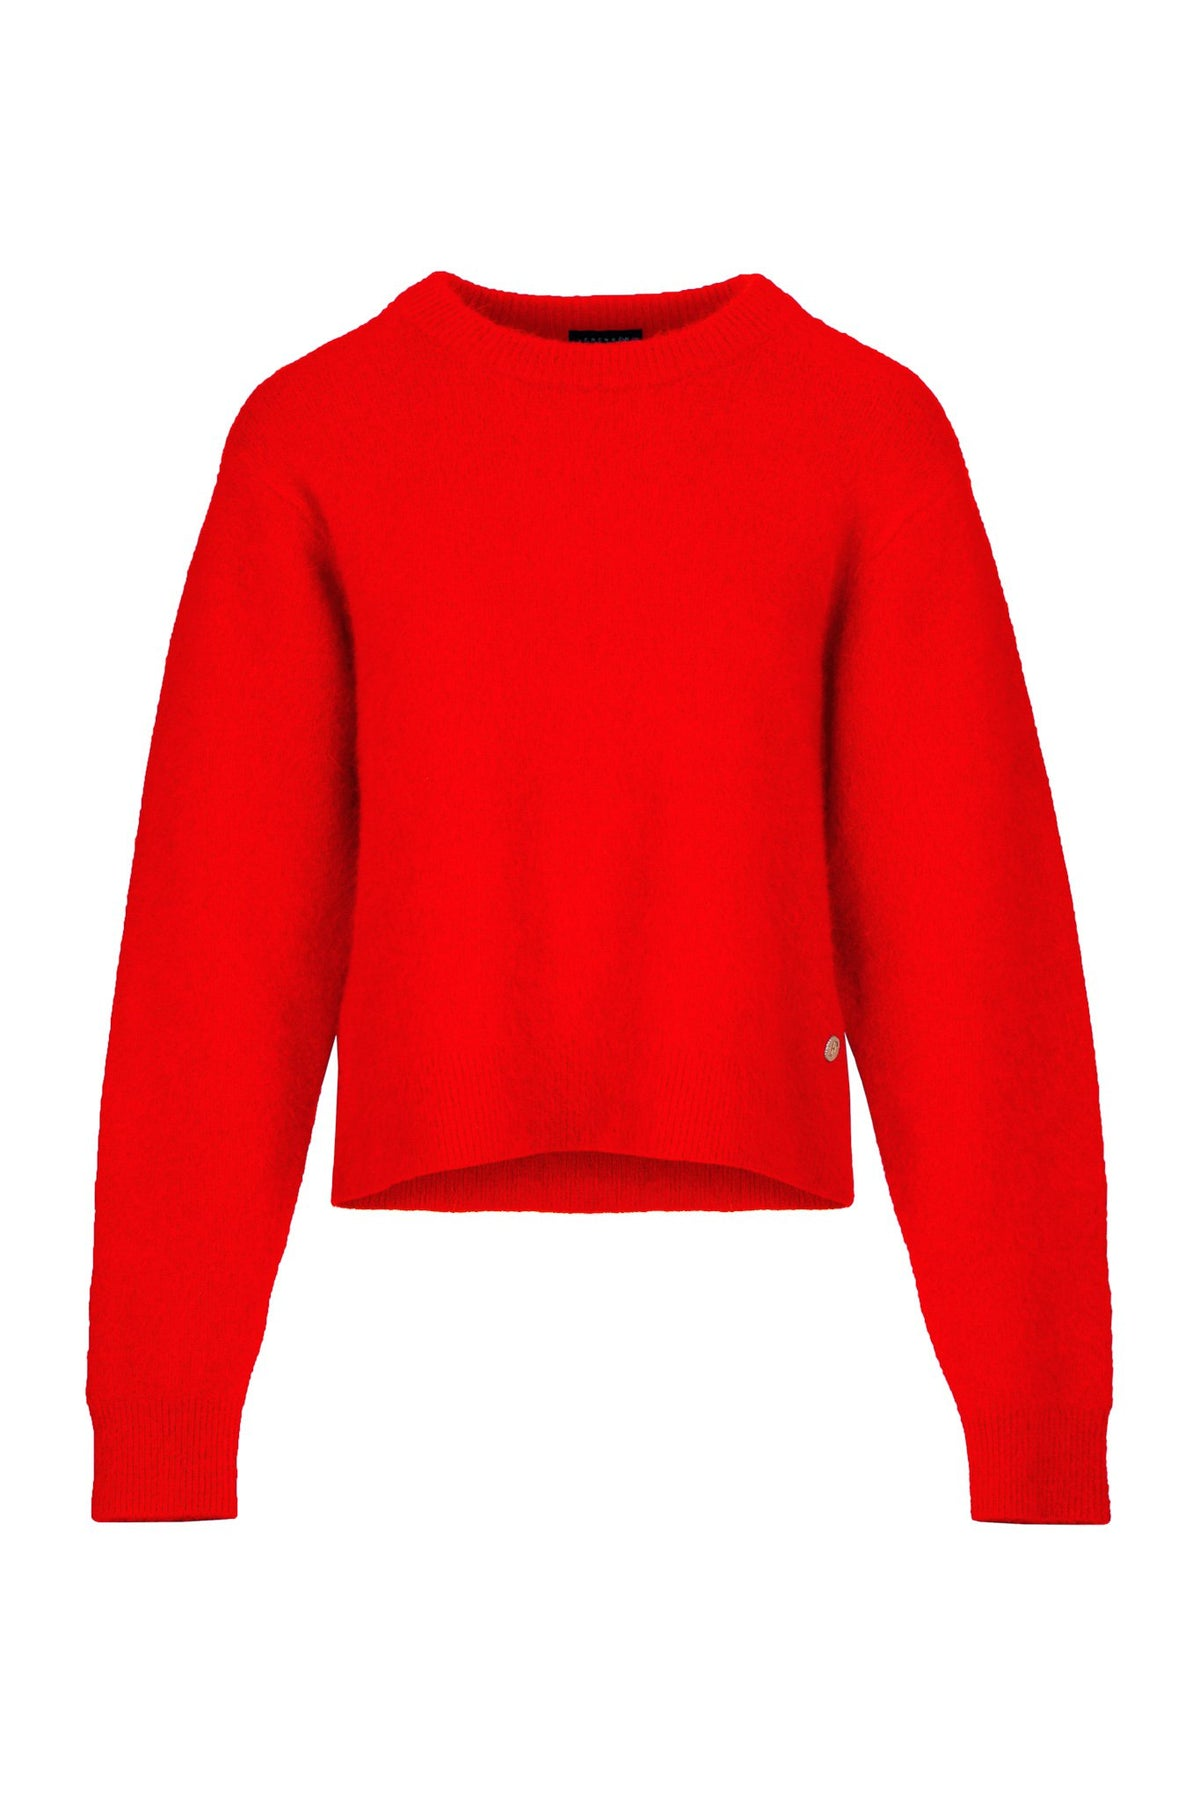 Present | Knitted Top | Fire Red